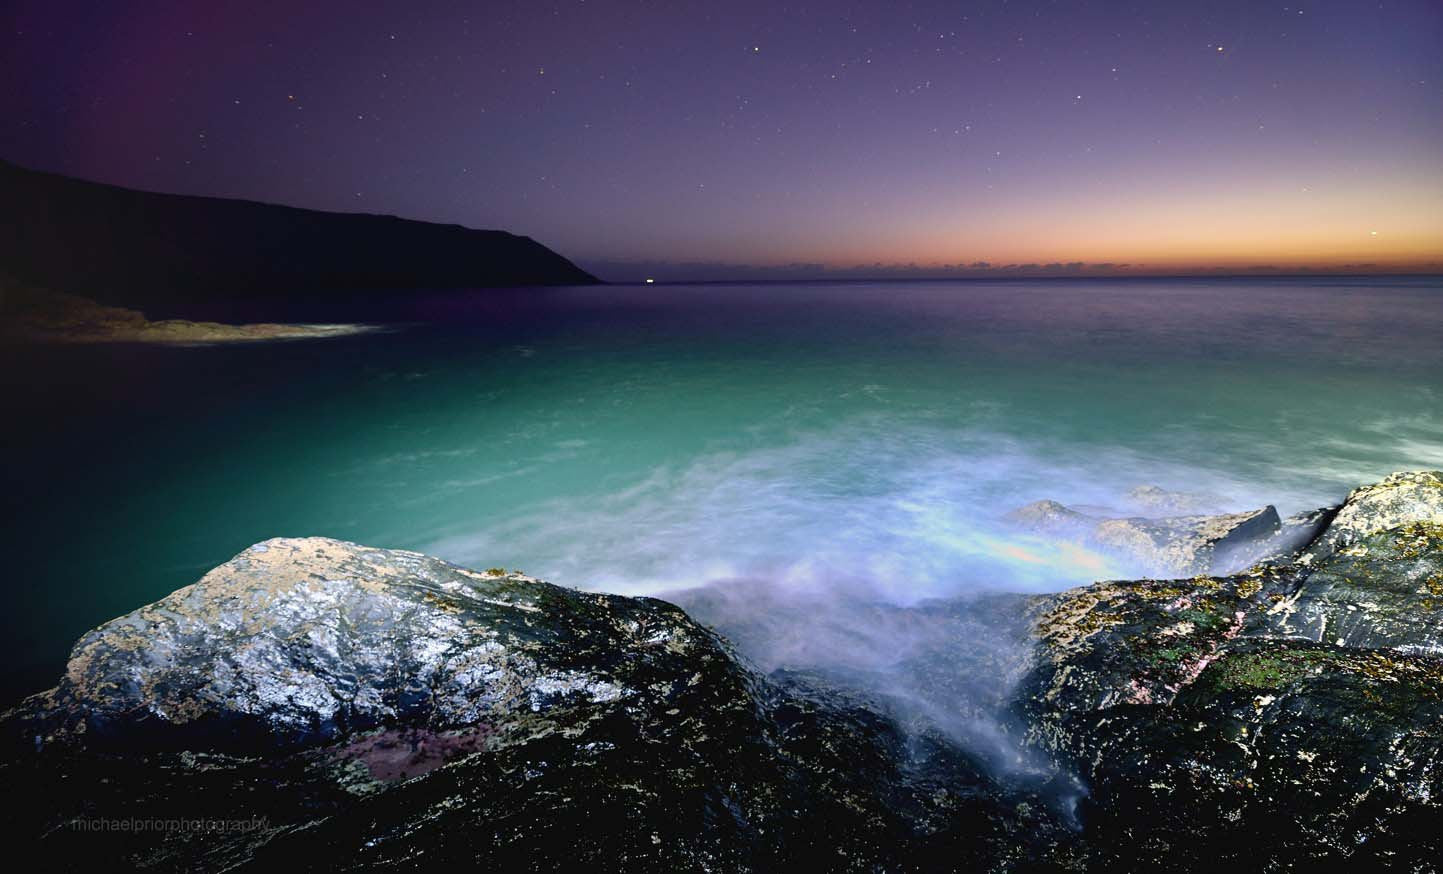 The Night Sea - Michael Prior Photography